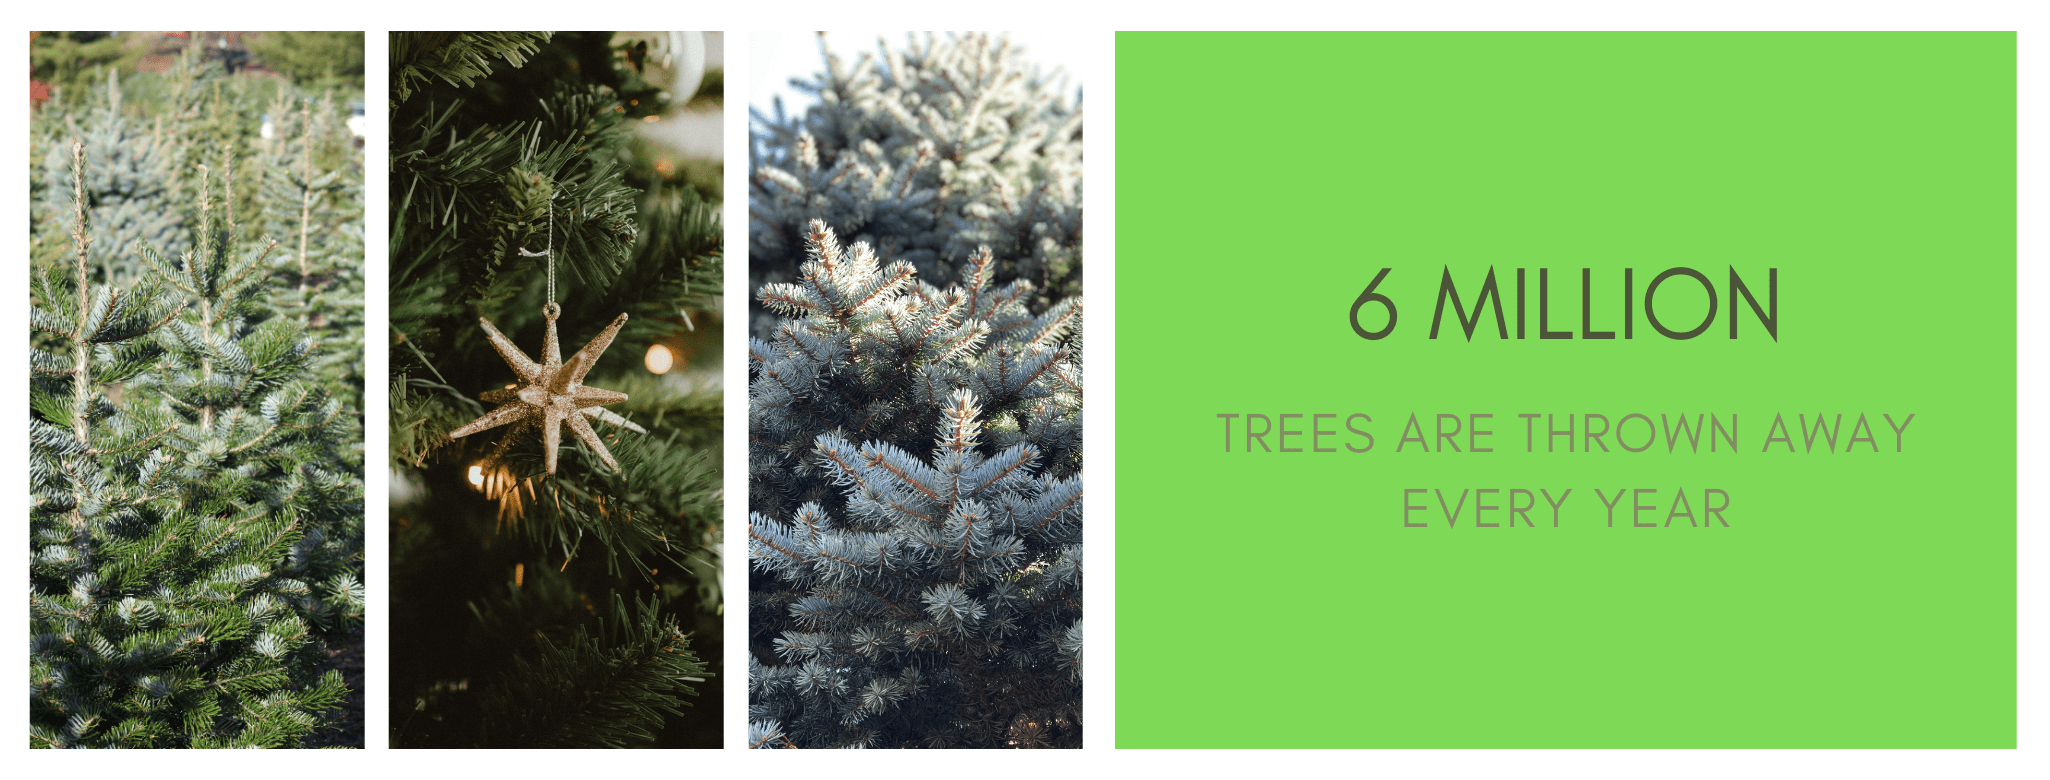 6 Million Chrisatmas trees are discarded every year.